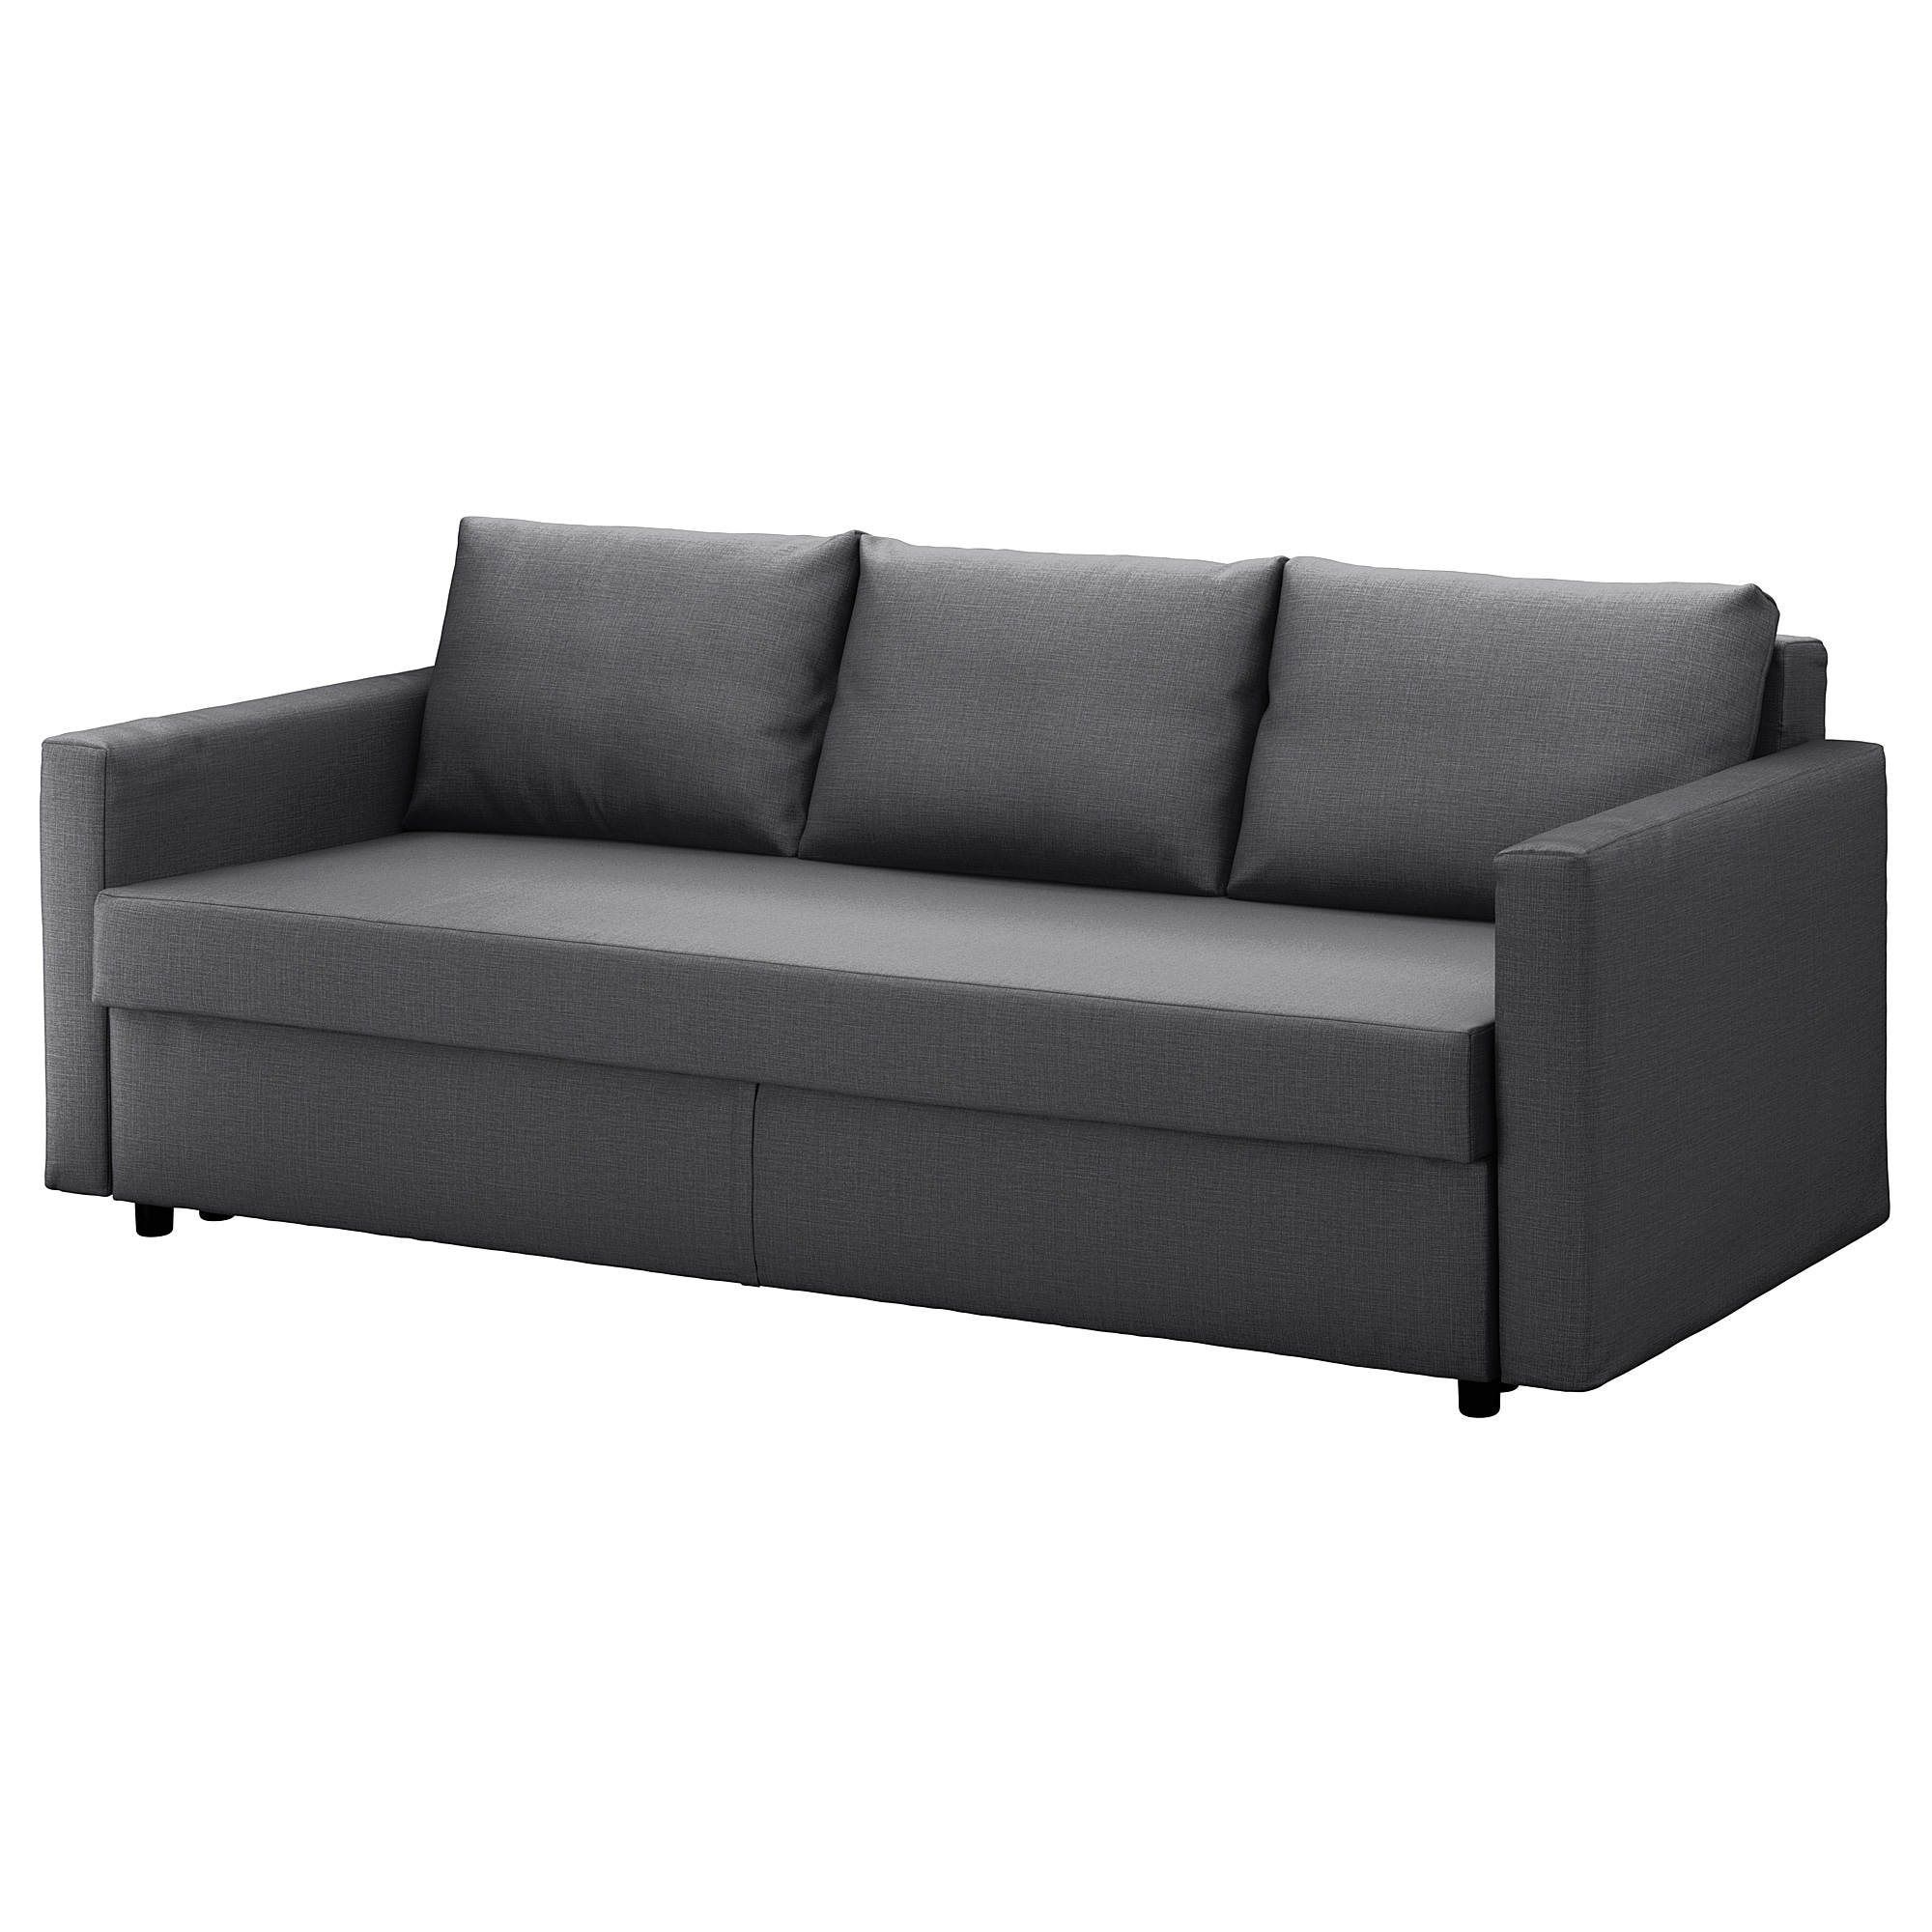 best loved cec7b f1802 Three-seat sofa-bed FRIHETEN Skiftebo dark grey